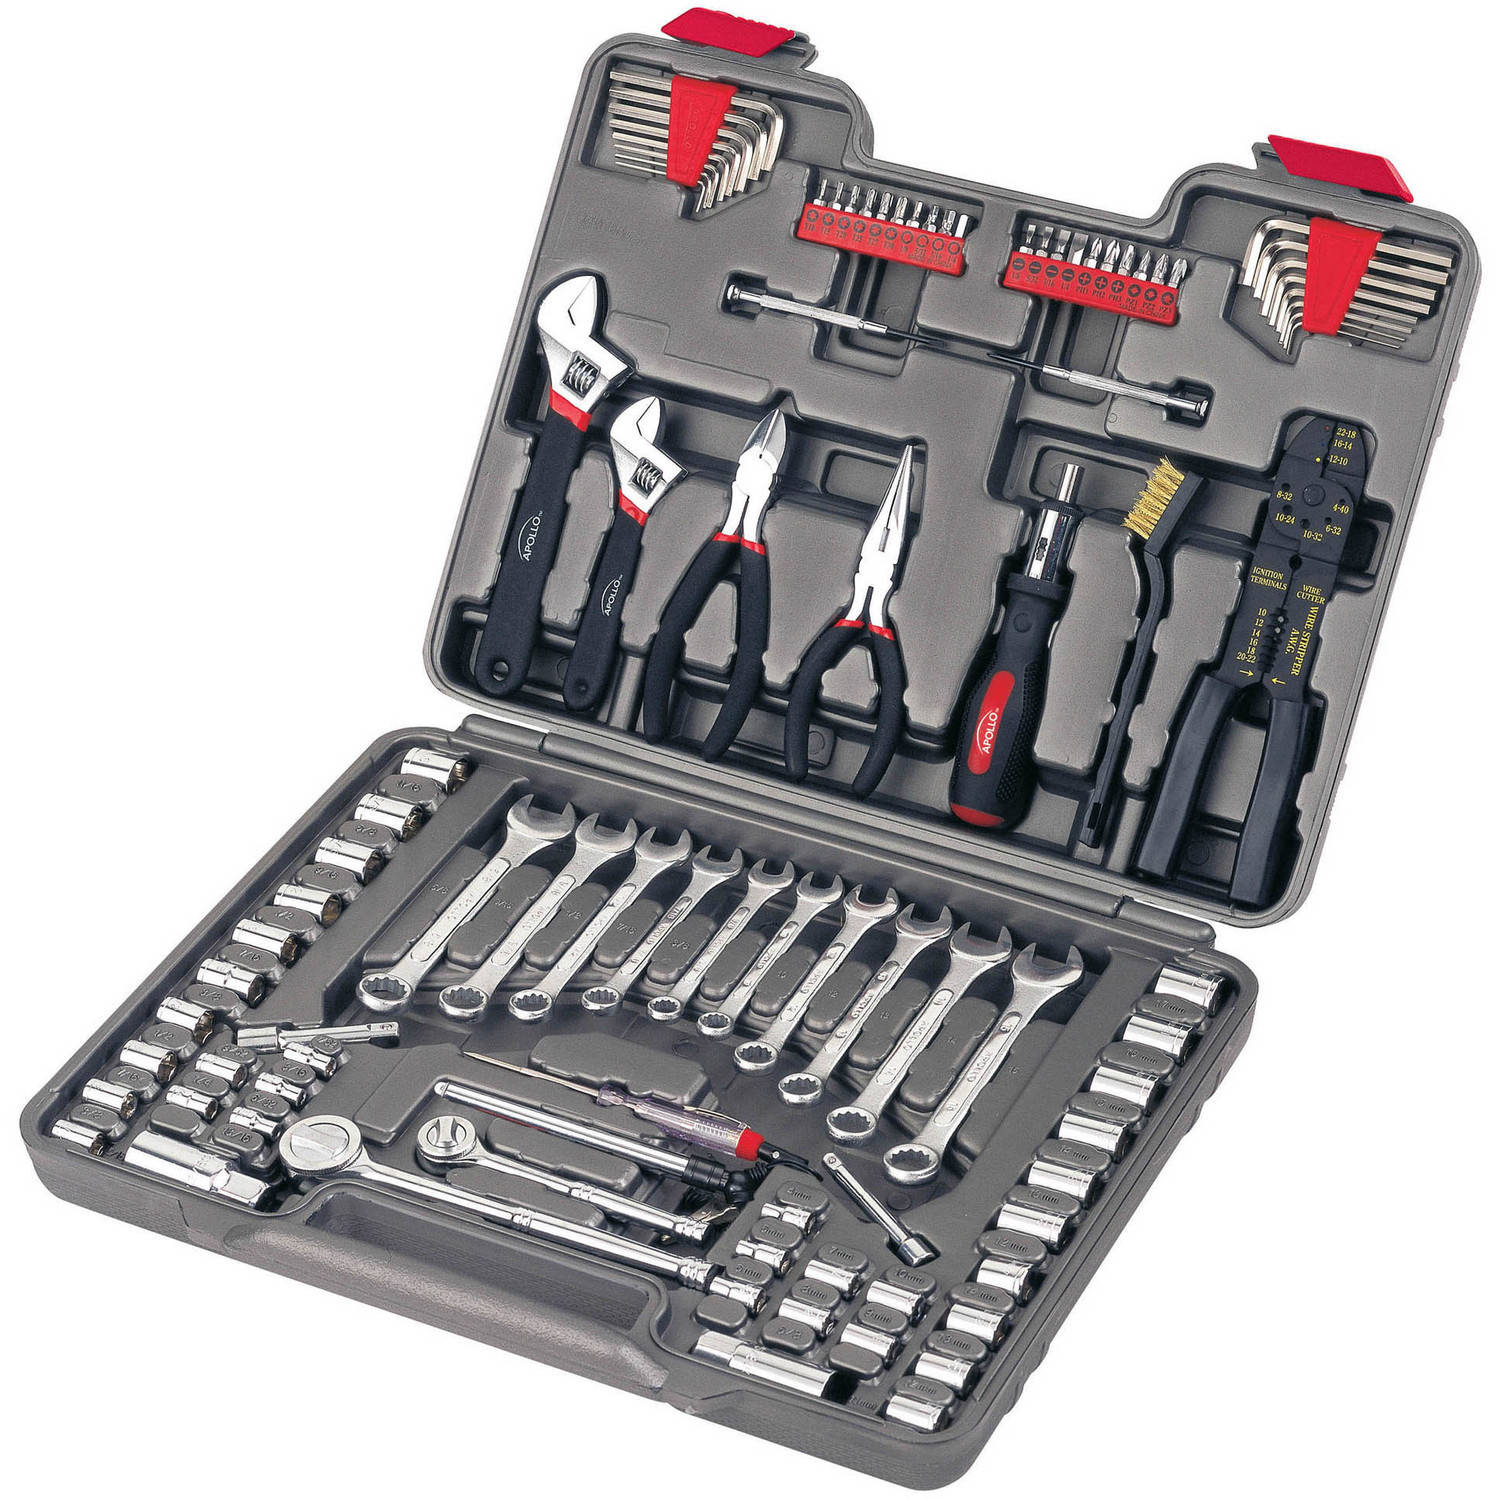 Apollo 95-Piece Mechanics Tool Set by American Fulfillment, Inc